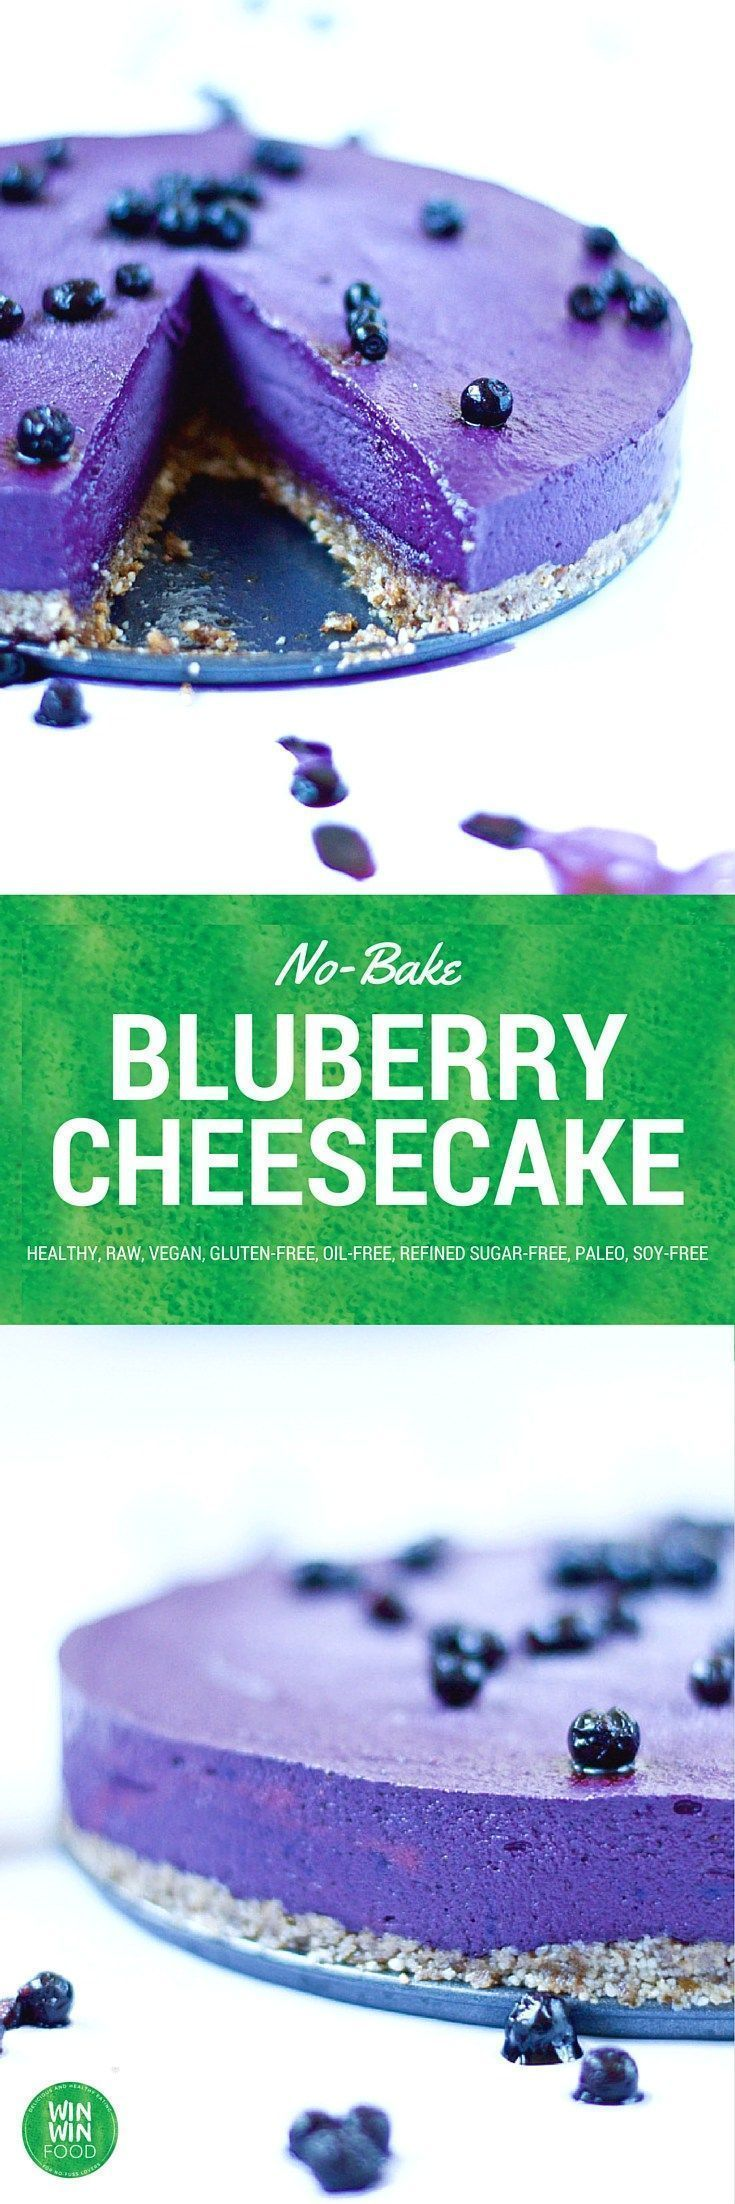 No-Bake Blueberry Cheesecake | WIN-WINFOOD.com #healthy #raw #vegan #glutenfree…